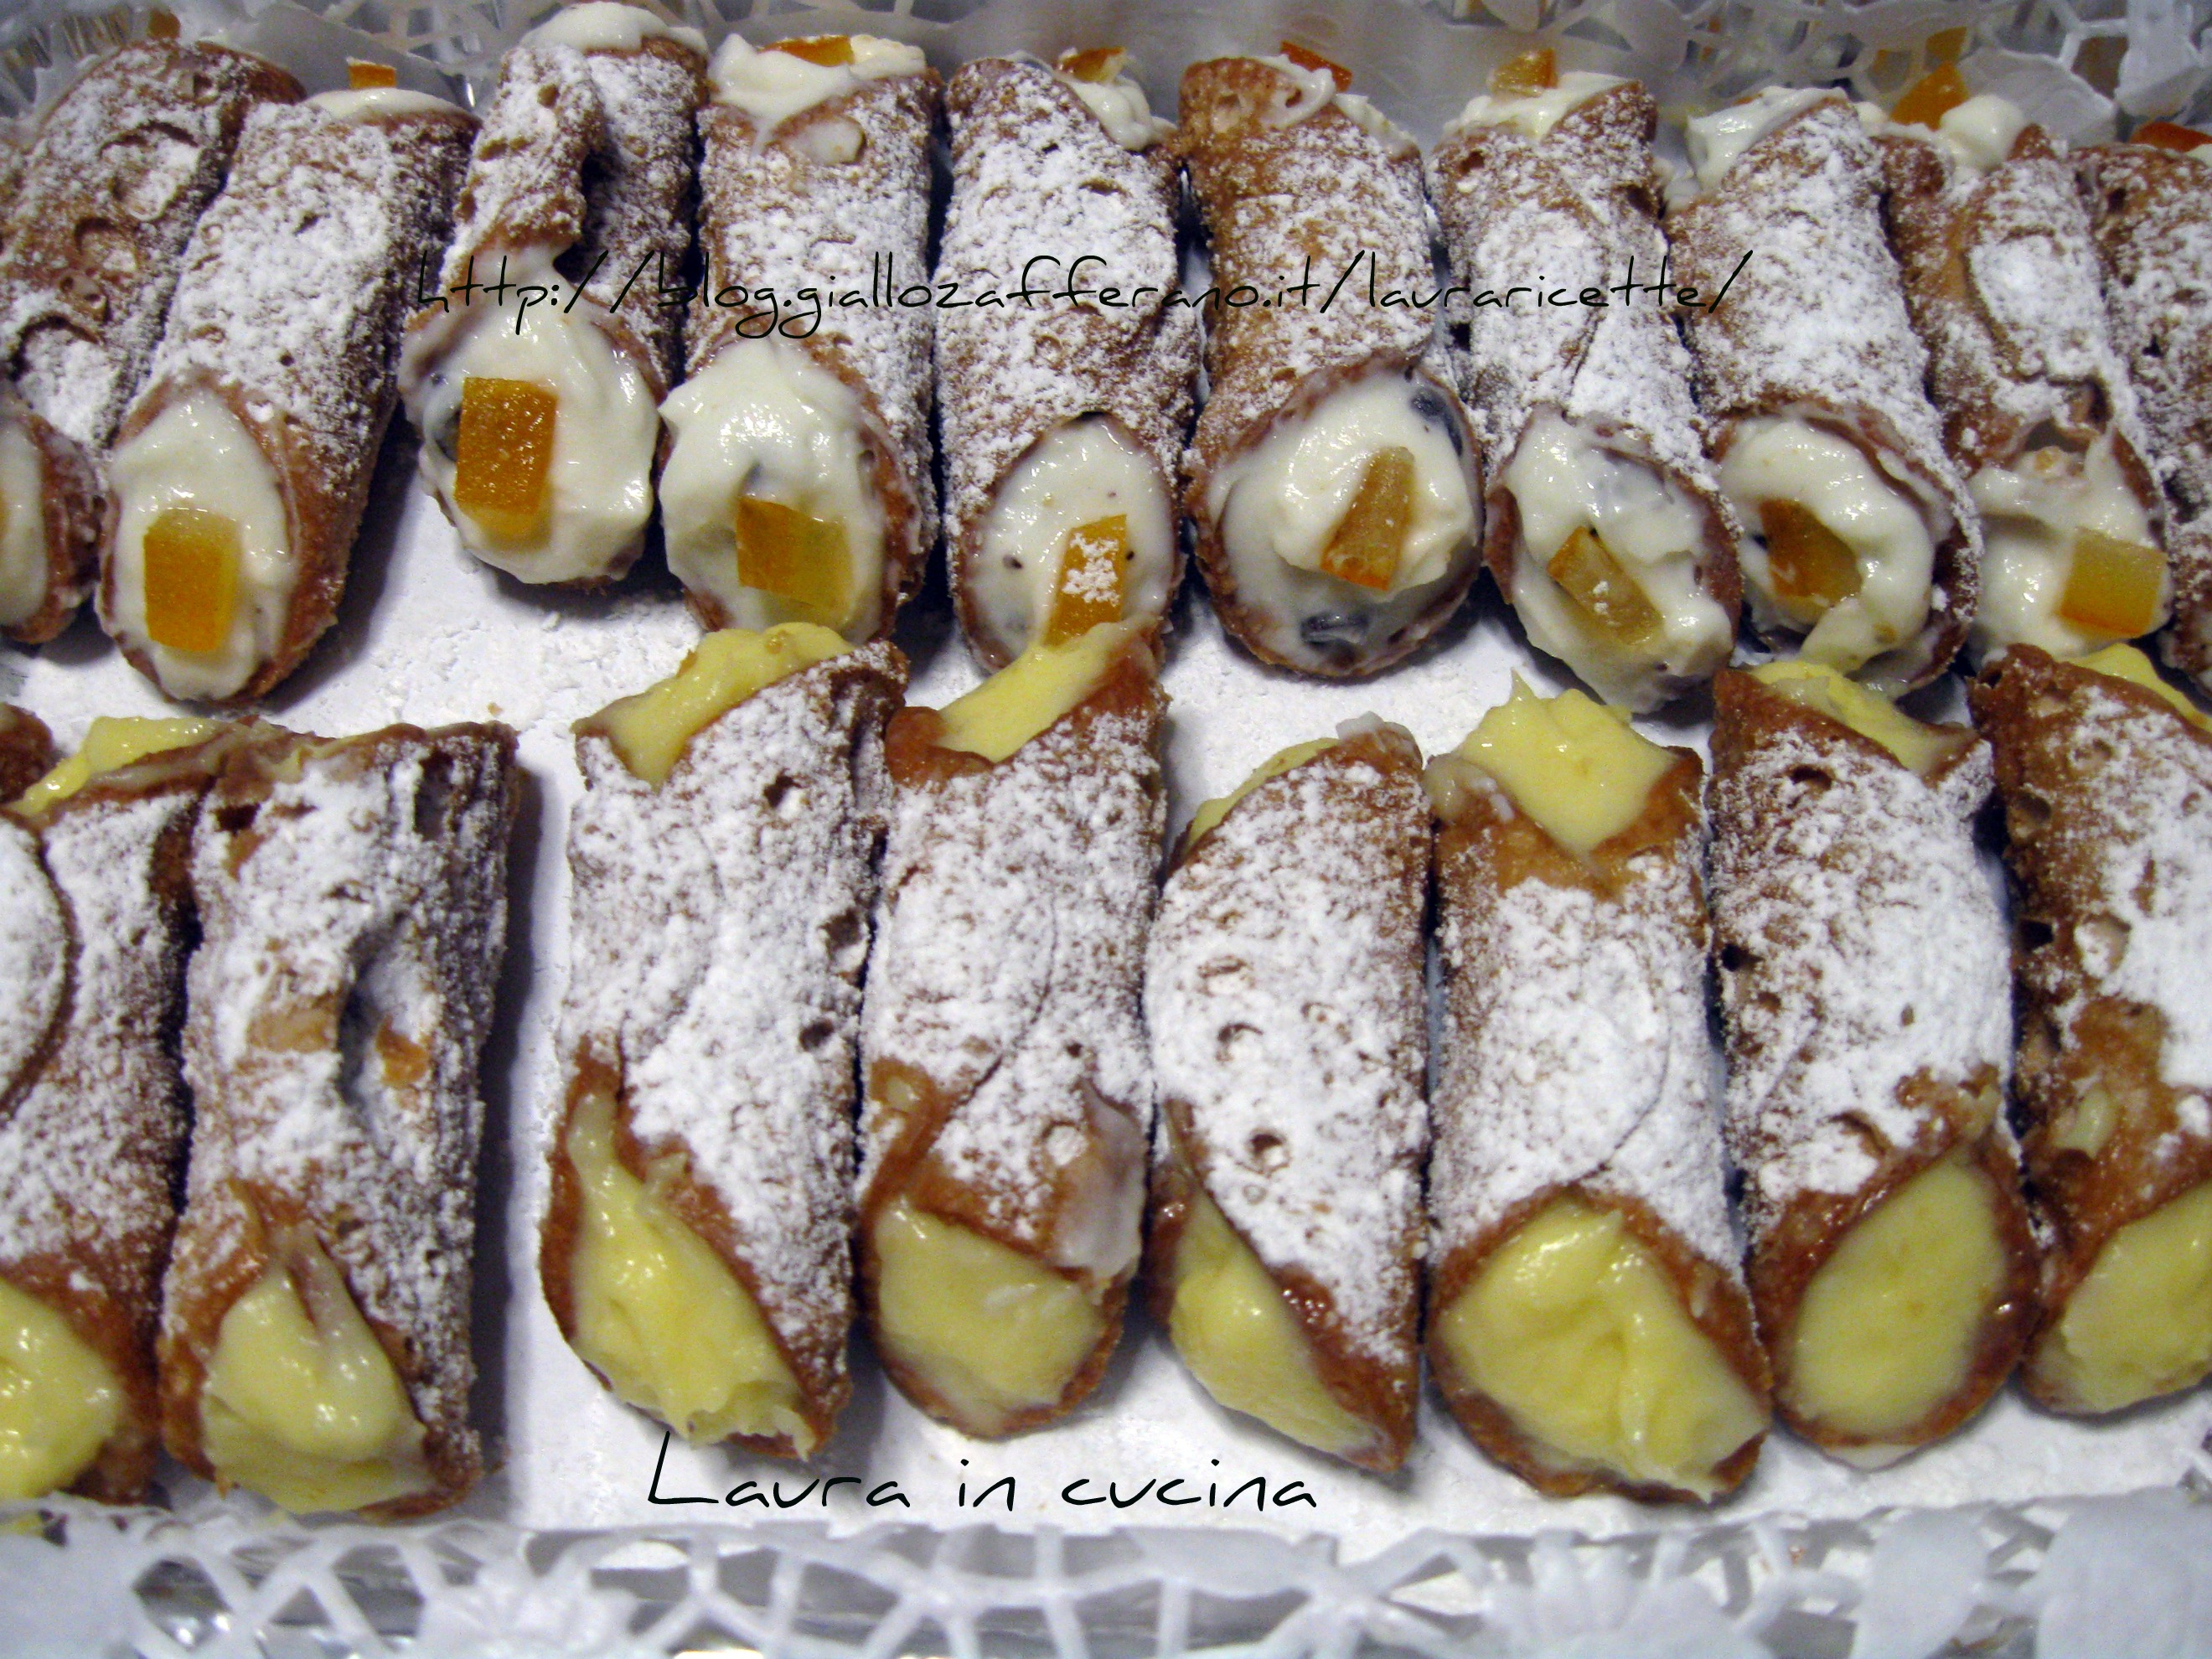 Cannoli Siciliani Images & Pictures - Becuo